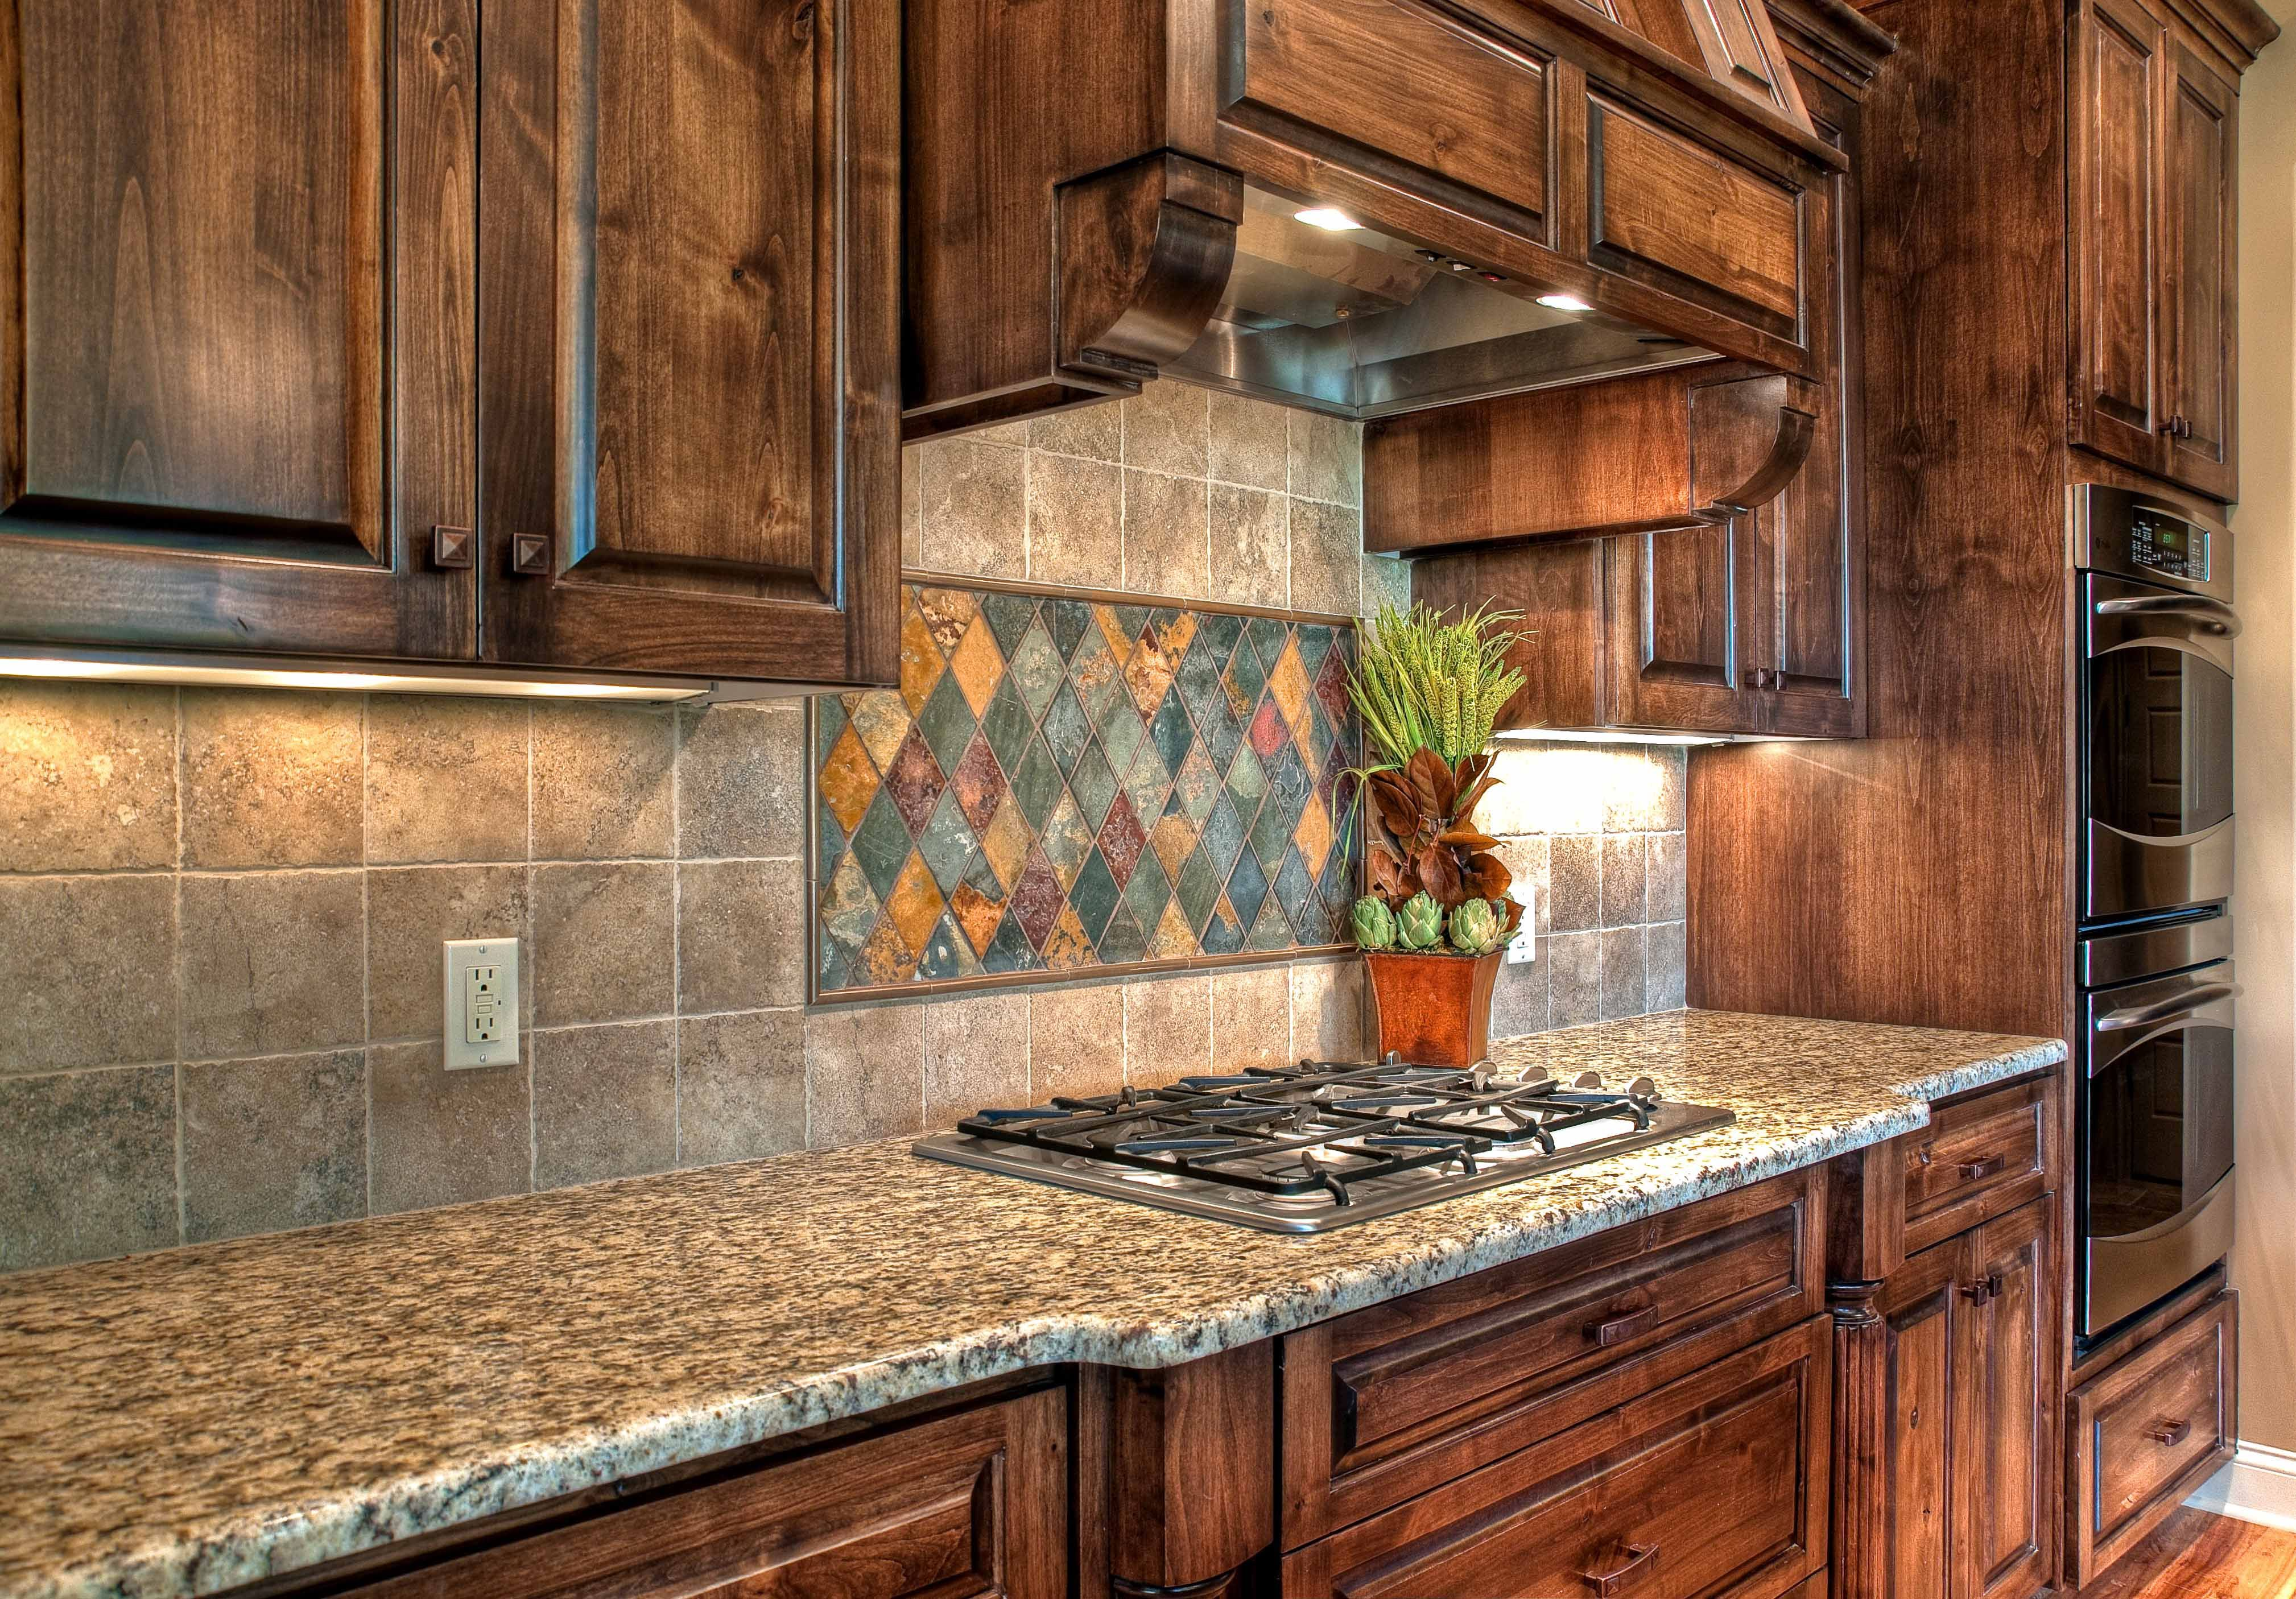 Kitchen In Omaha Area Home Photographed For Np Dodge Real Estate Beautiful Kitchens Kitchen Home